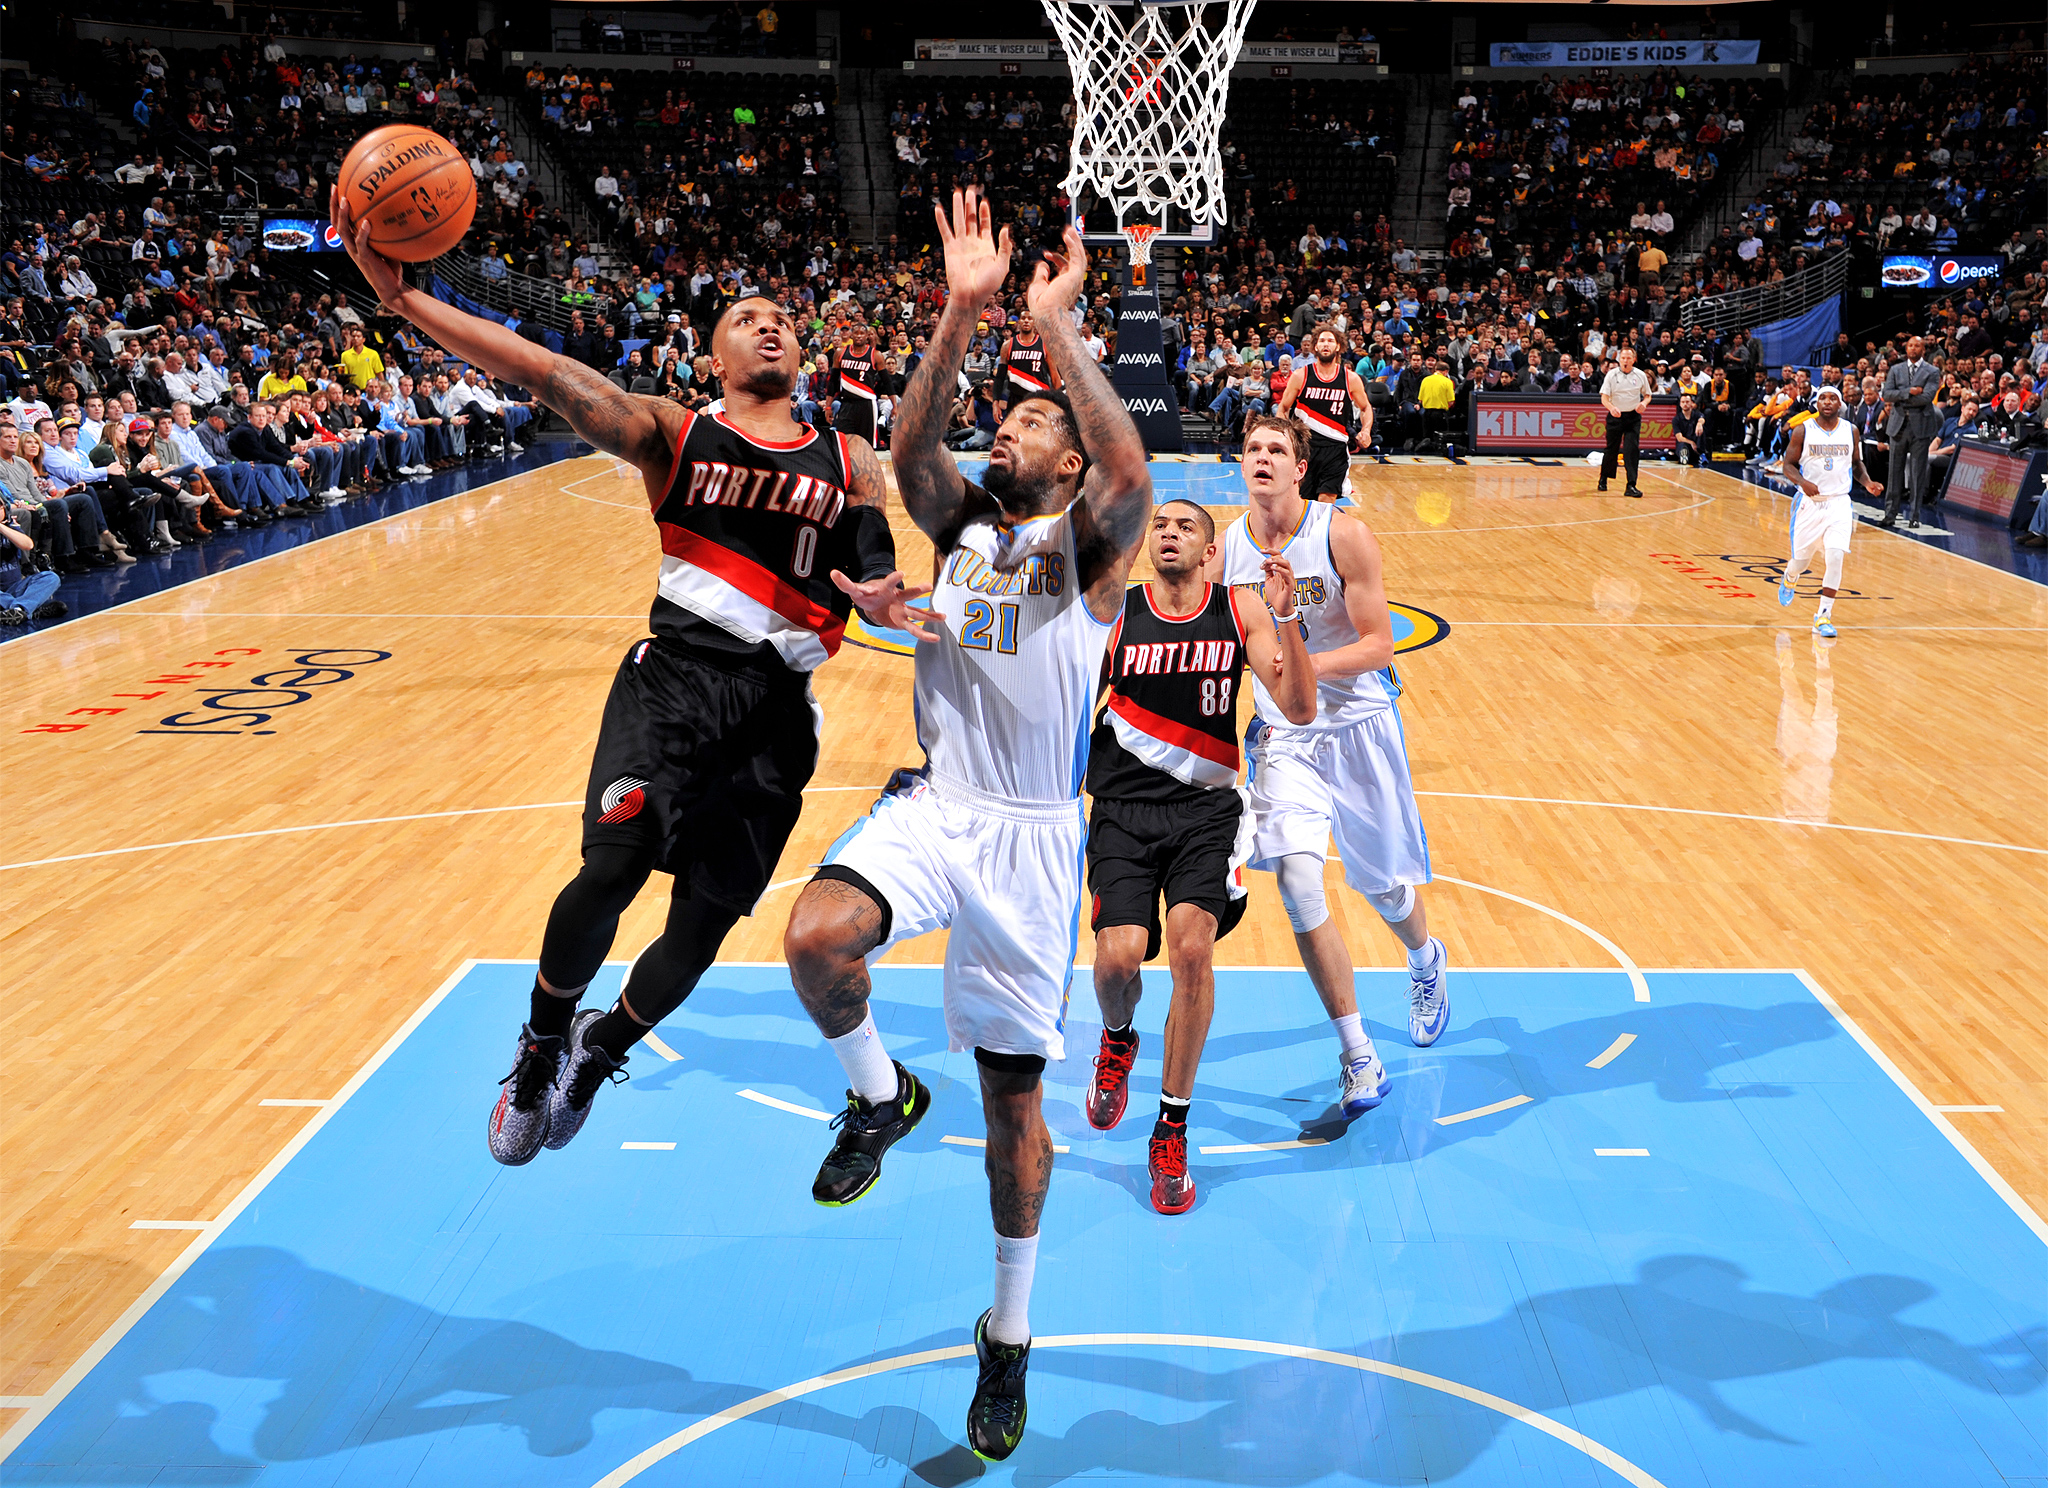 7. Damian Lillard - NBA Top 25 Under 25 - ESPN